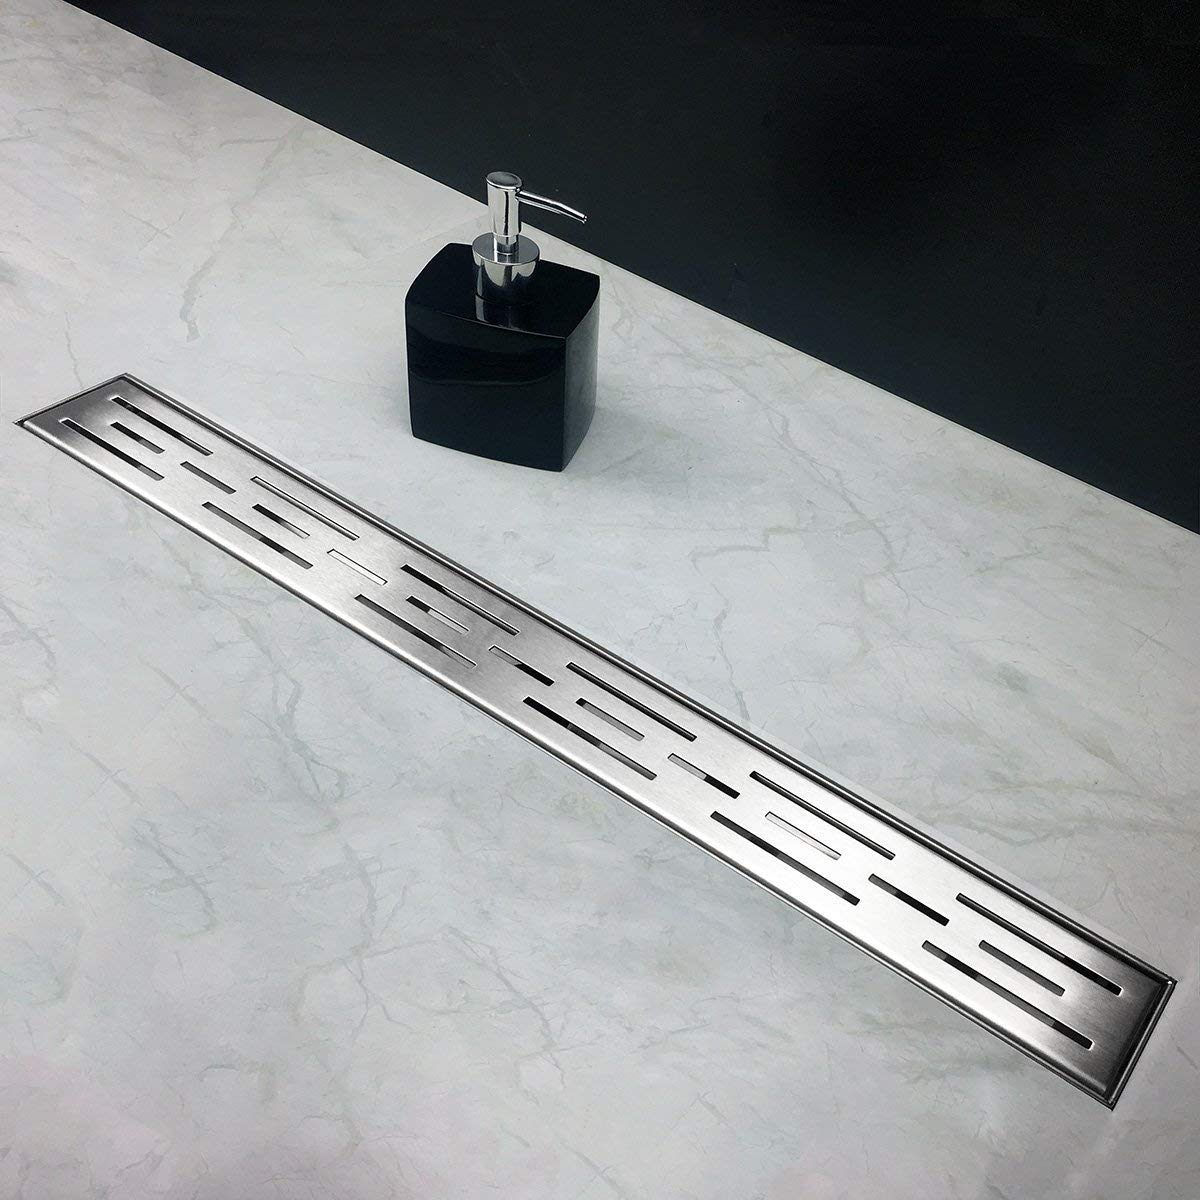 Neodrain 36 Inch Rectangular Linear Shower Drain with Brick Pattern Grate, Brushed 304 Stainless Steel Bathroom Floor Drain,Shower Floor Drain Includes Adjustable Leveling Feet, Hair Strainer